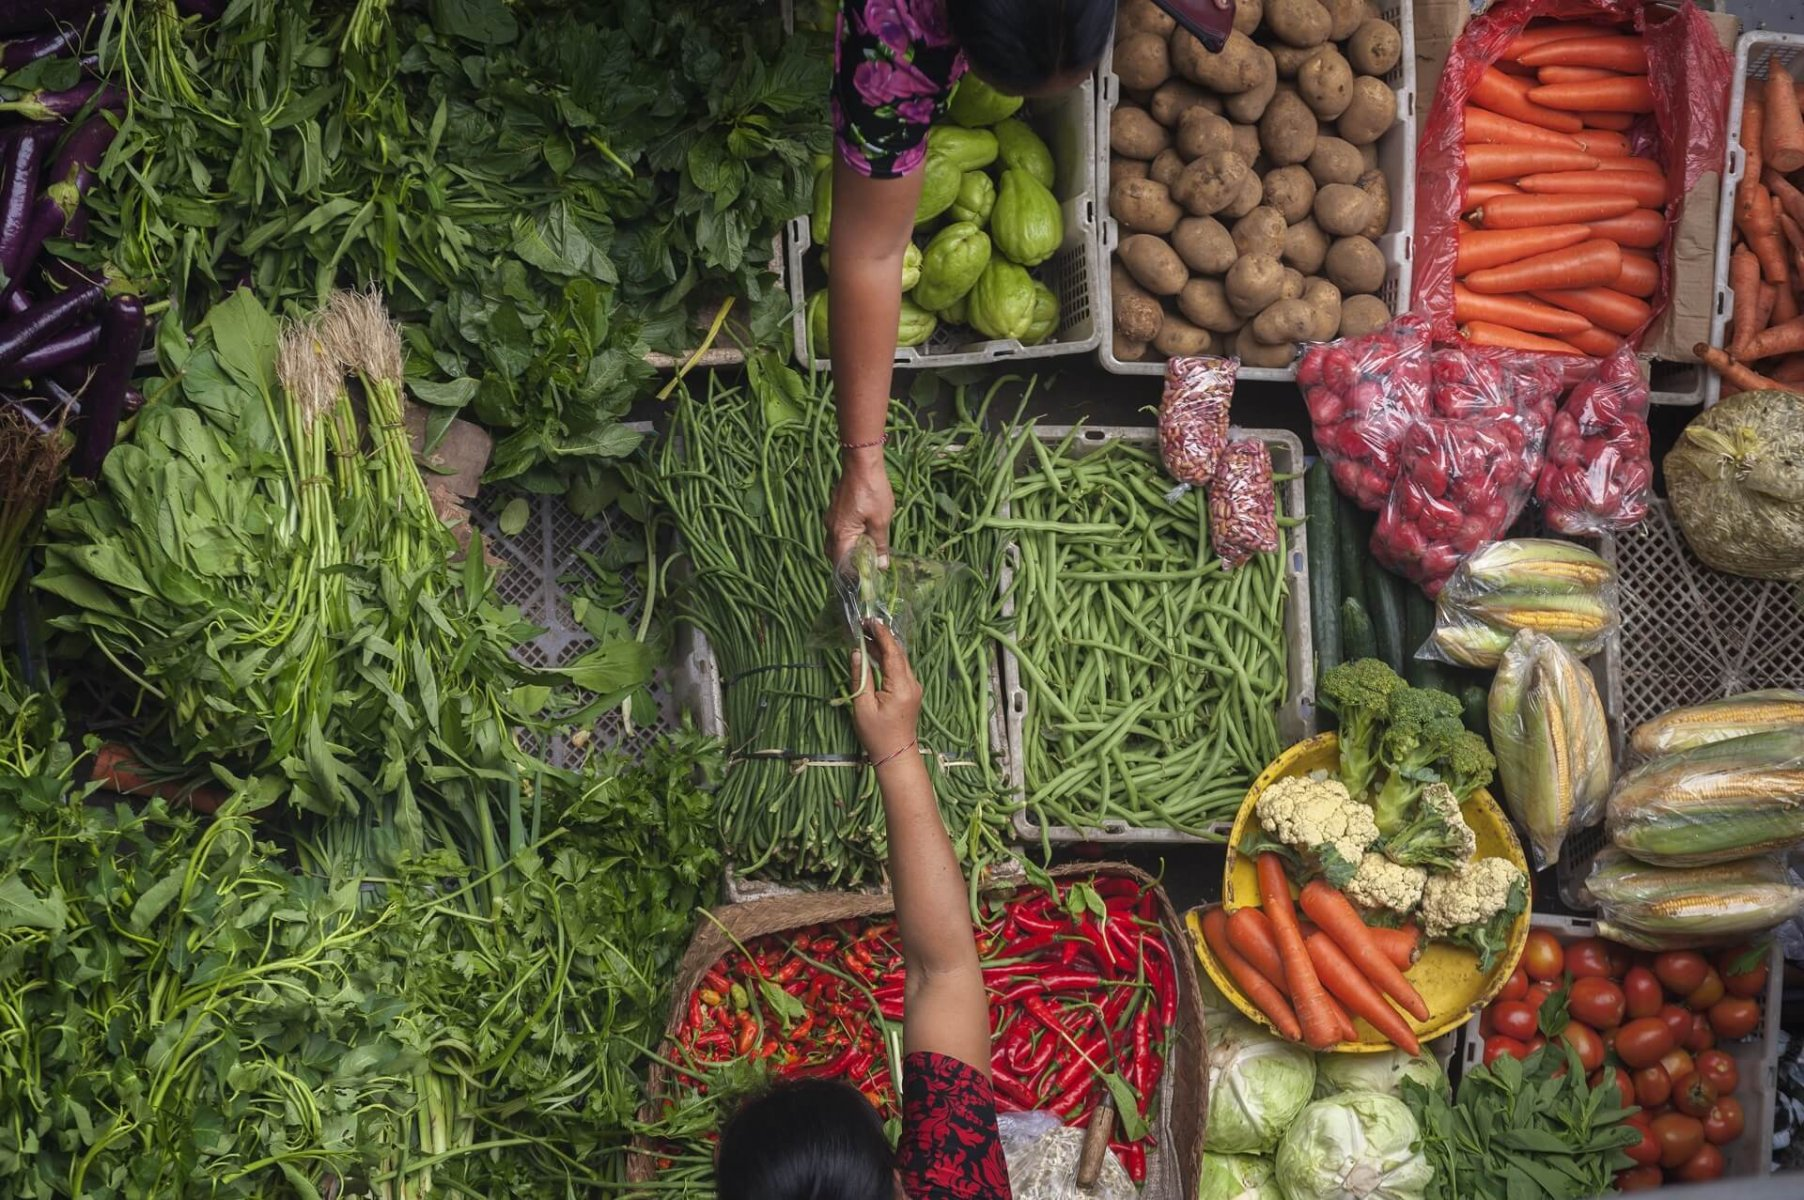 Food production must become sustainable to safeguard the future of humanity © Shutterstock